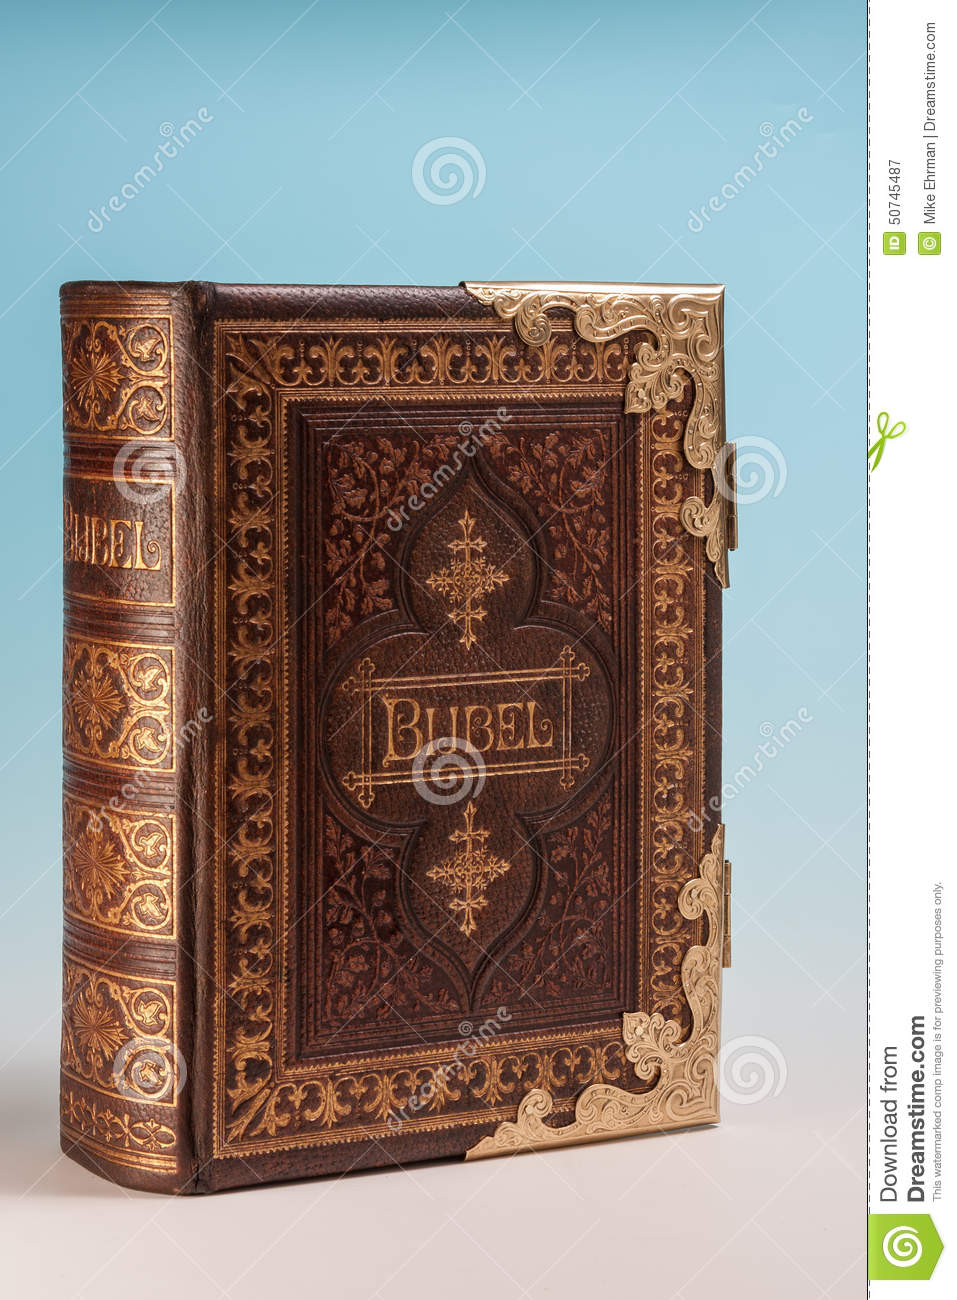 Vintage Leather Look Jeremiah Verse Bible Book Cover Large: Ancient Bible Stock Photo